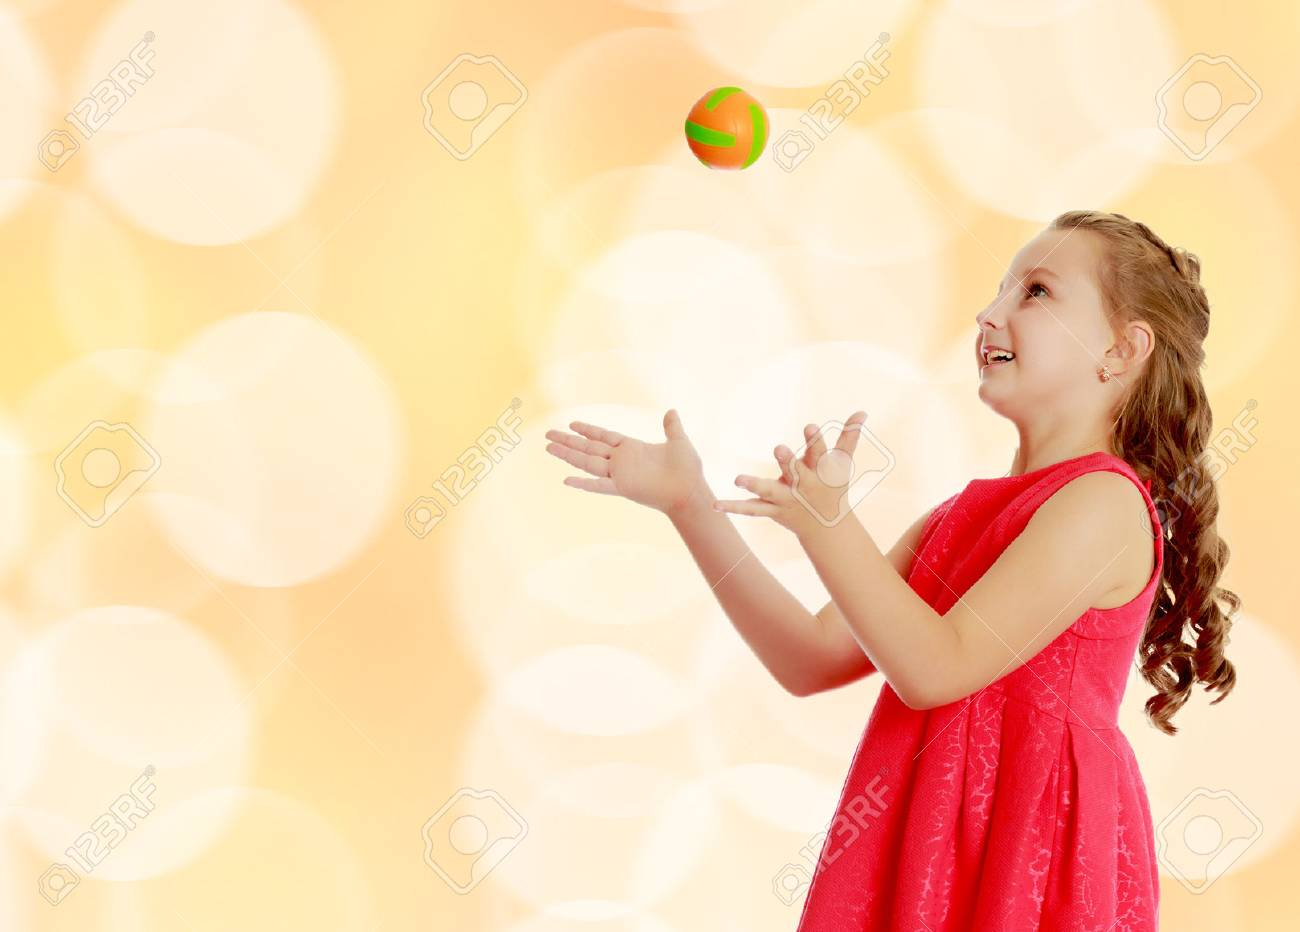 Beautiful Caucasian little girl in a bright orange dress, throws a little ball.Brown festive, Christmas background with white snowflakes, circles. - 65687392